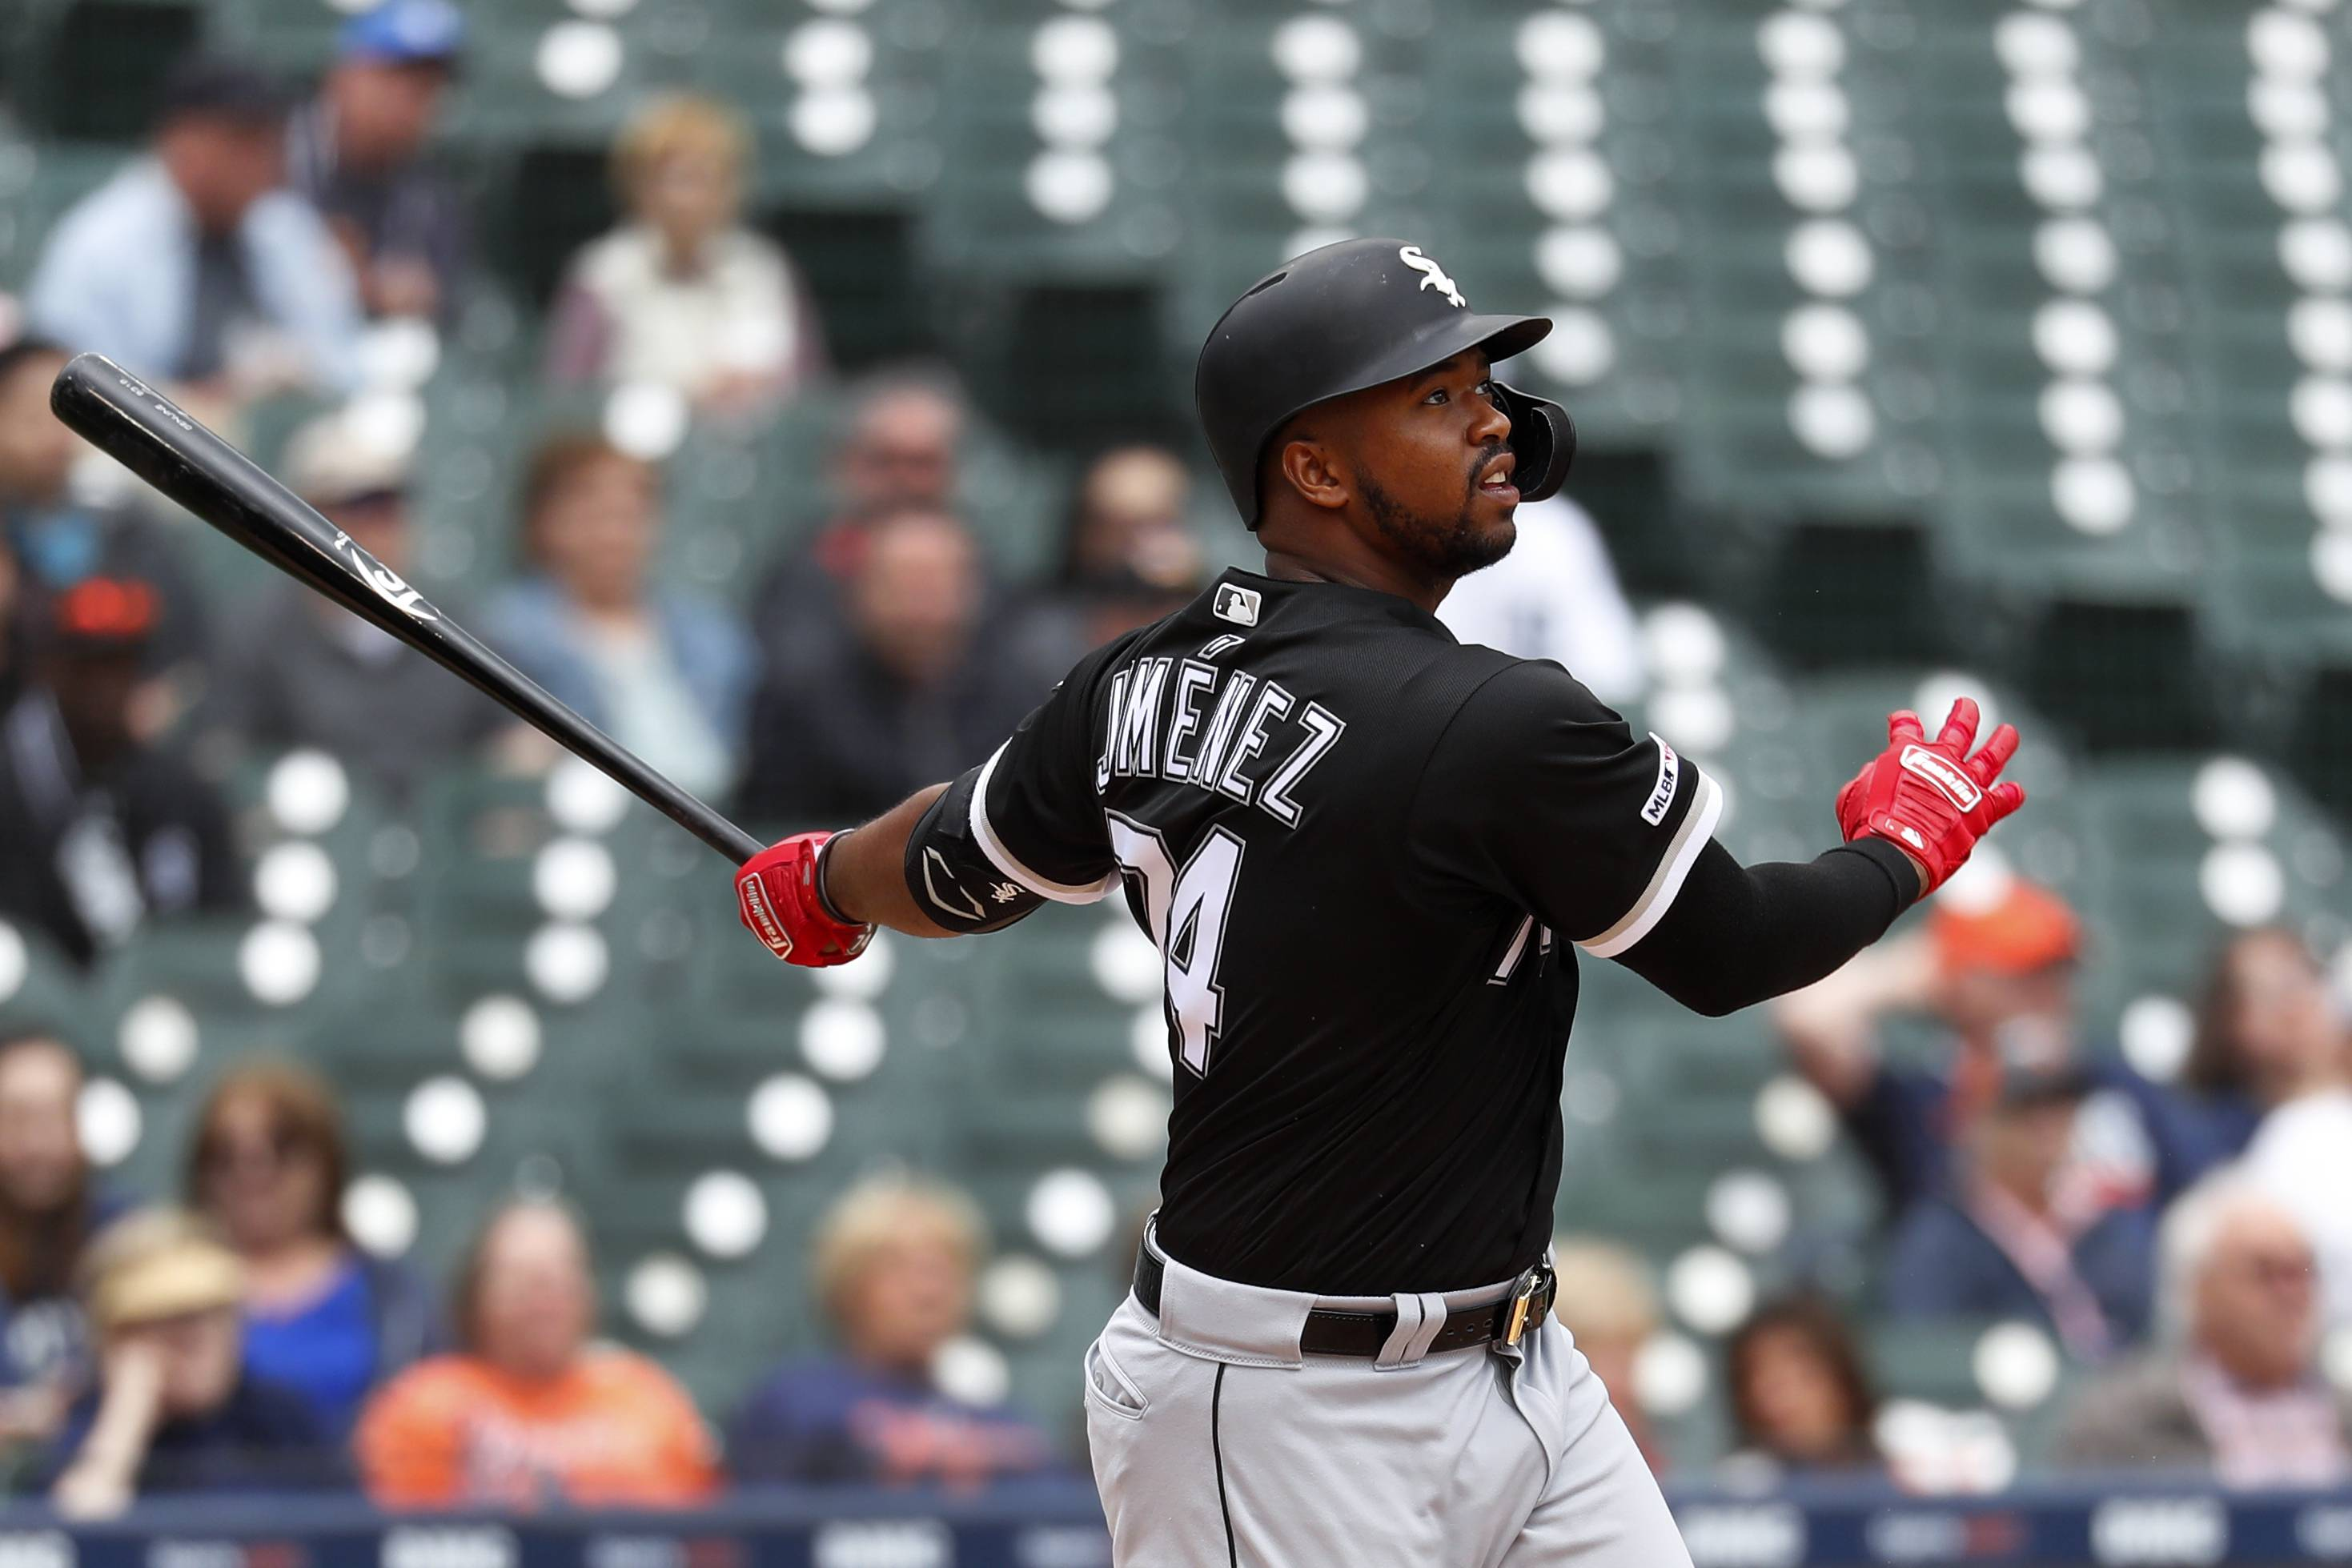 The White Sox's Eloy Jimenez hits a 2-run home run against the Tigers in the sixth inning of a baseball game in Detroit on Thursday. In his first 19 games with the Sox, Jimenez has a .242/.300/.392 hitting line with 2 doubles, 3 homers and 8 RBI.